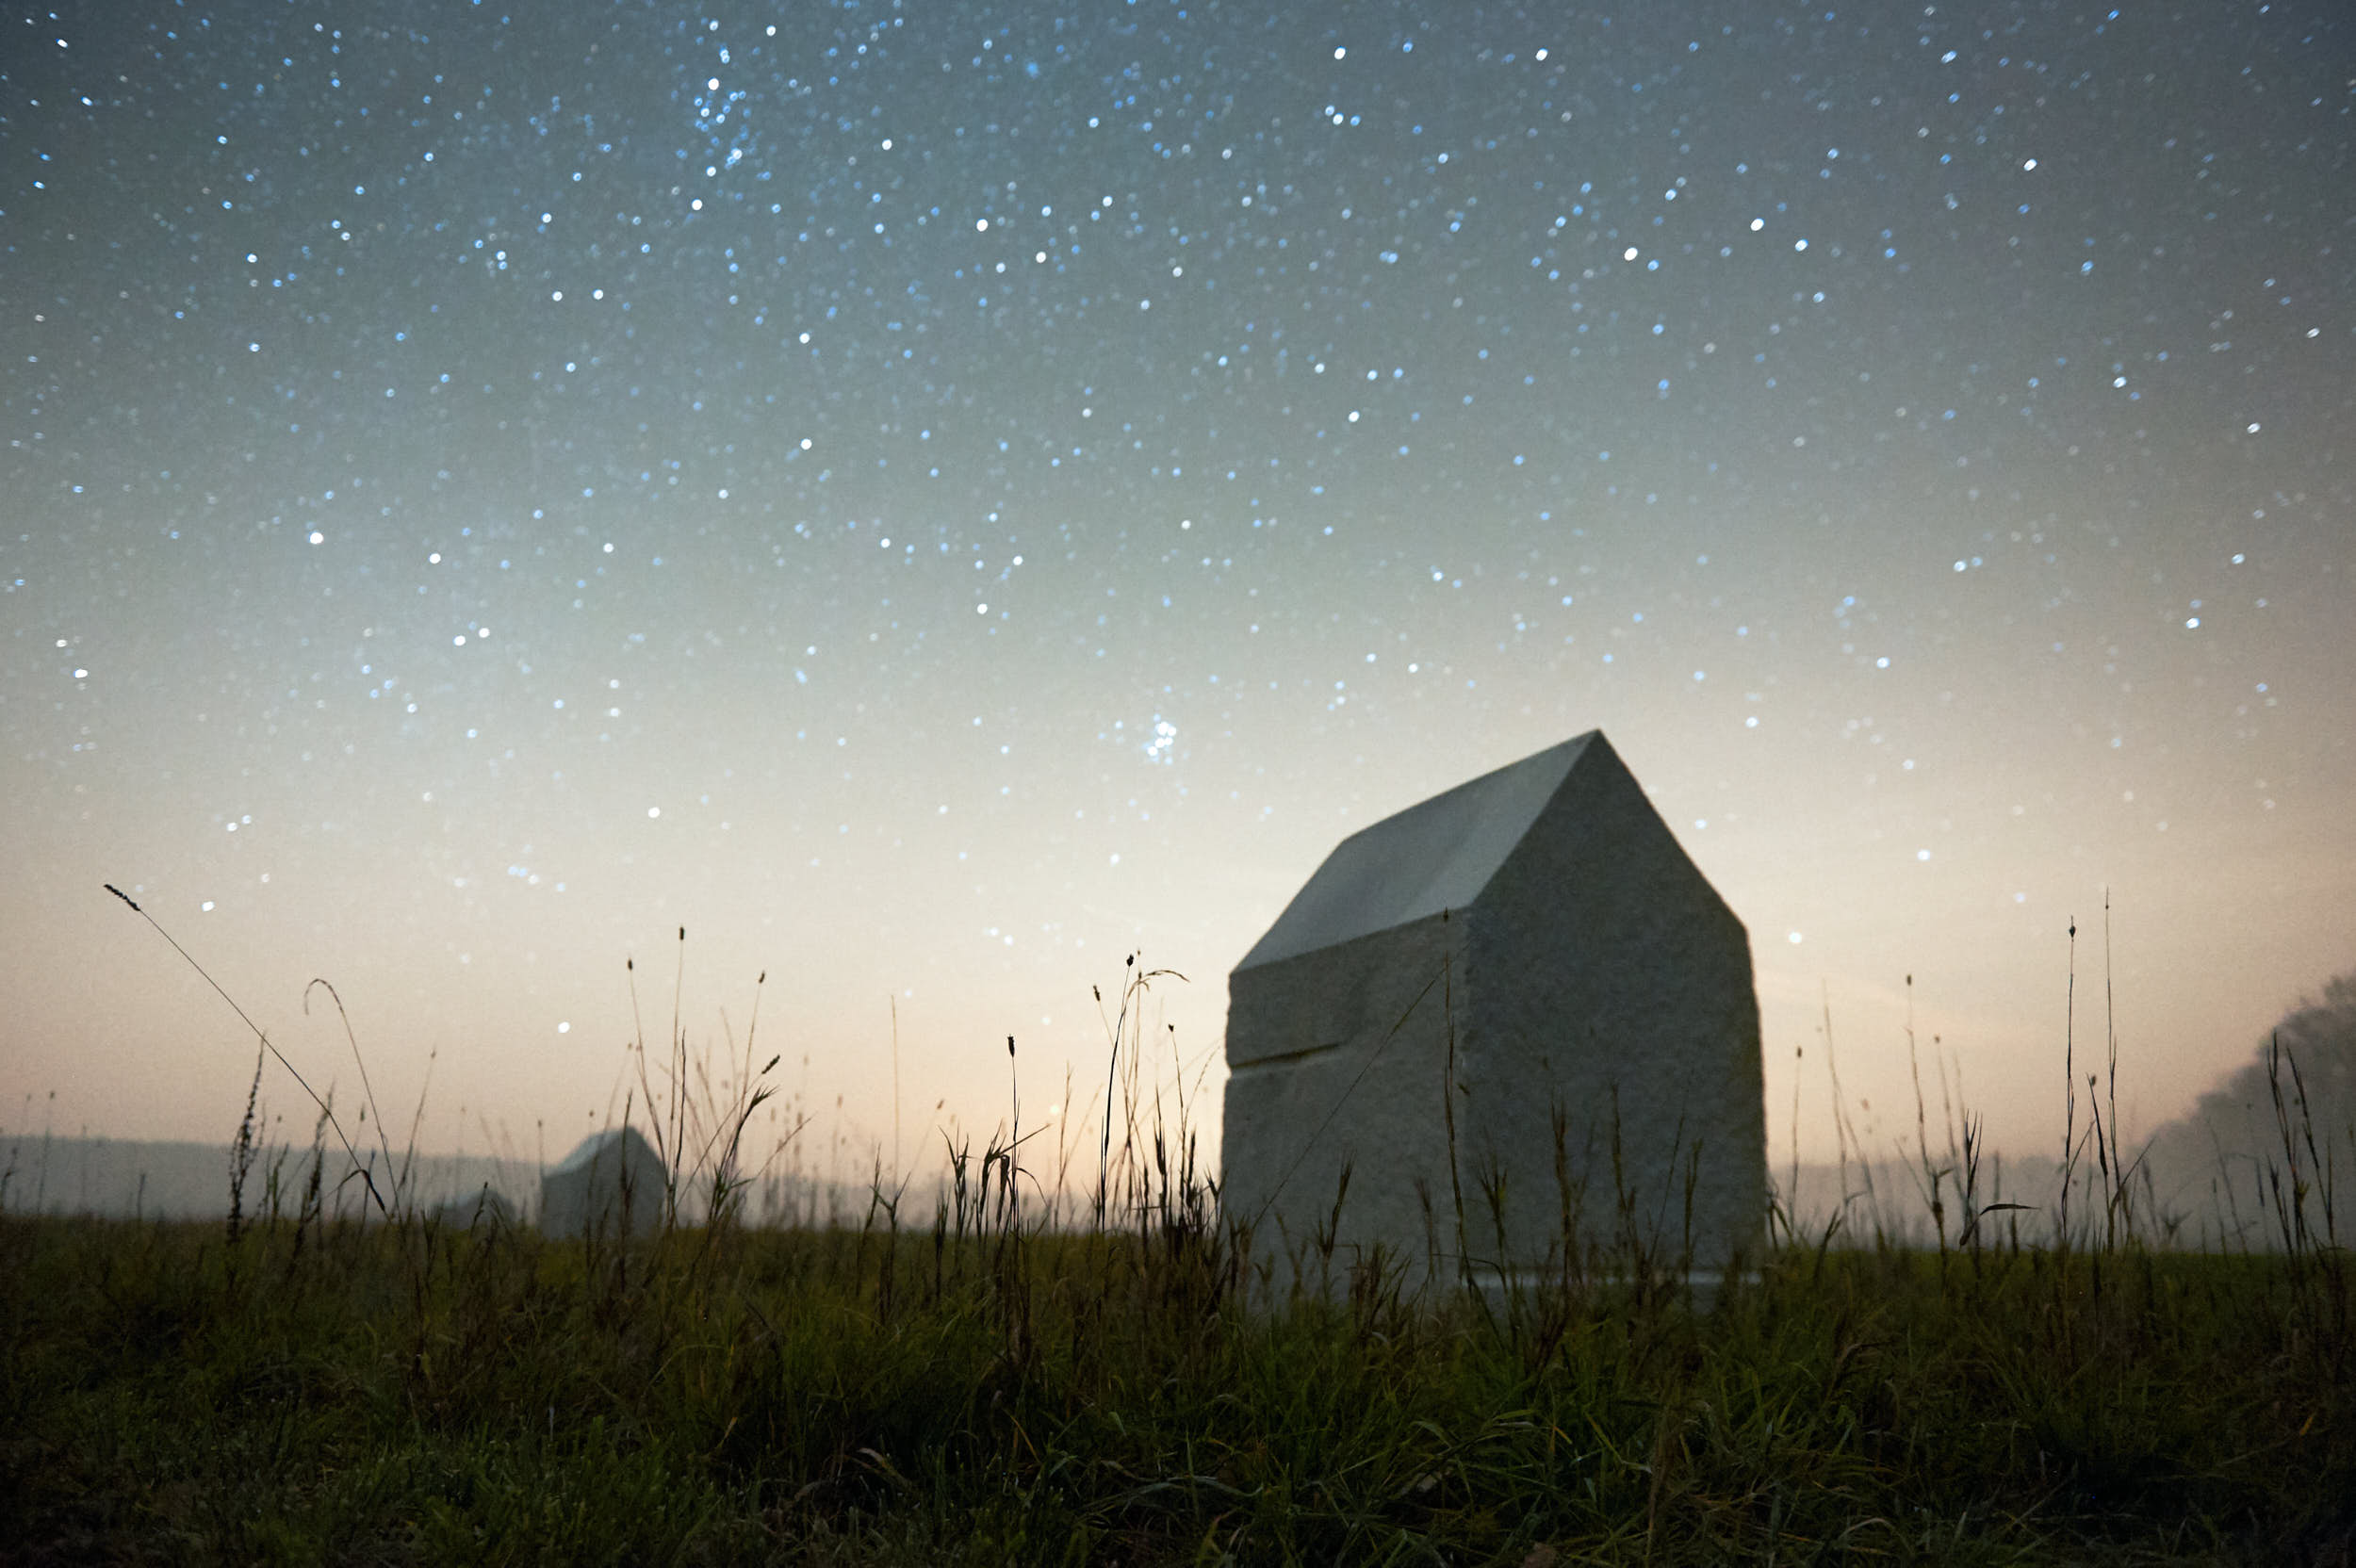 Minimal stone sculptures under starry night sky.